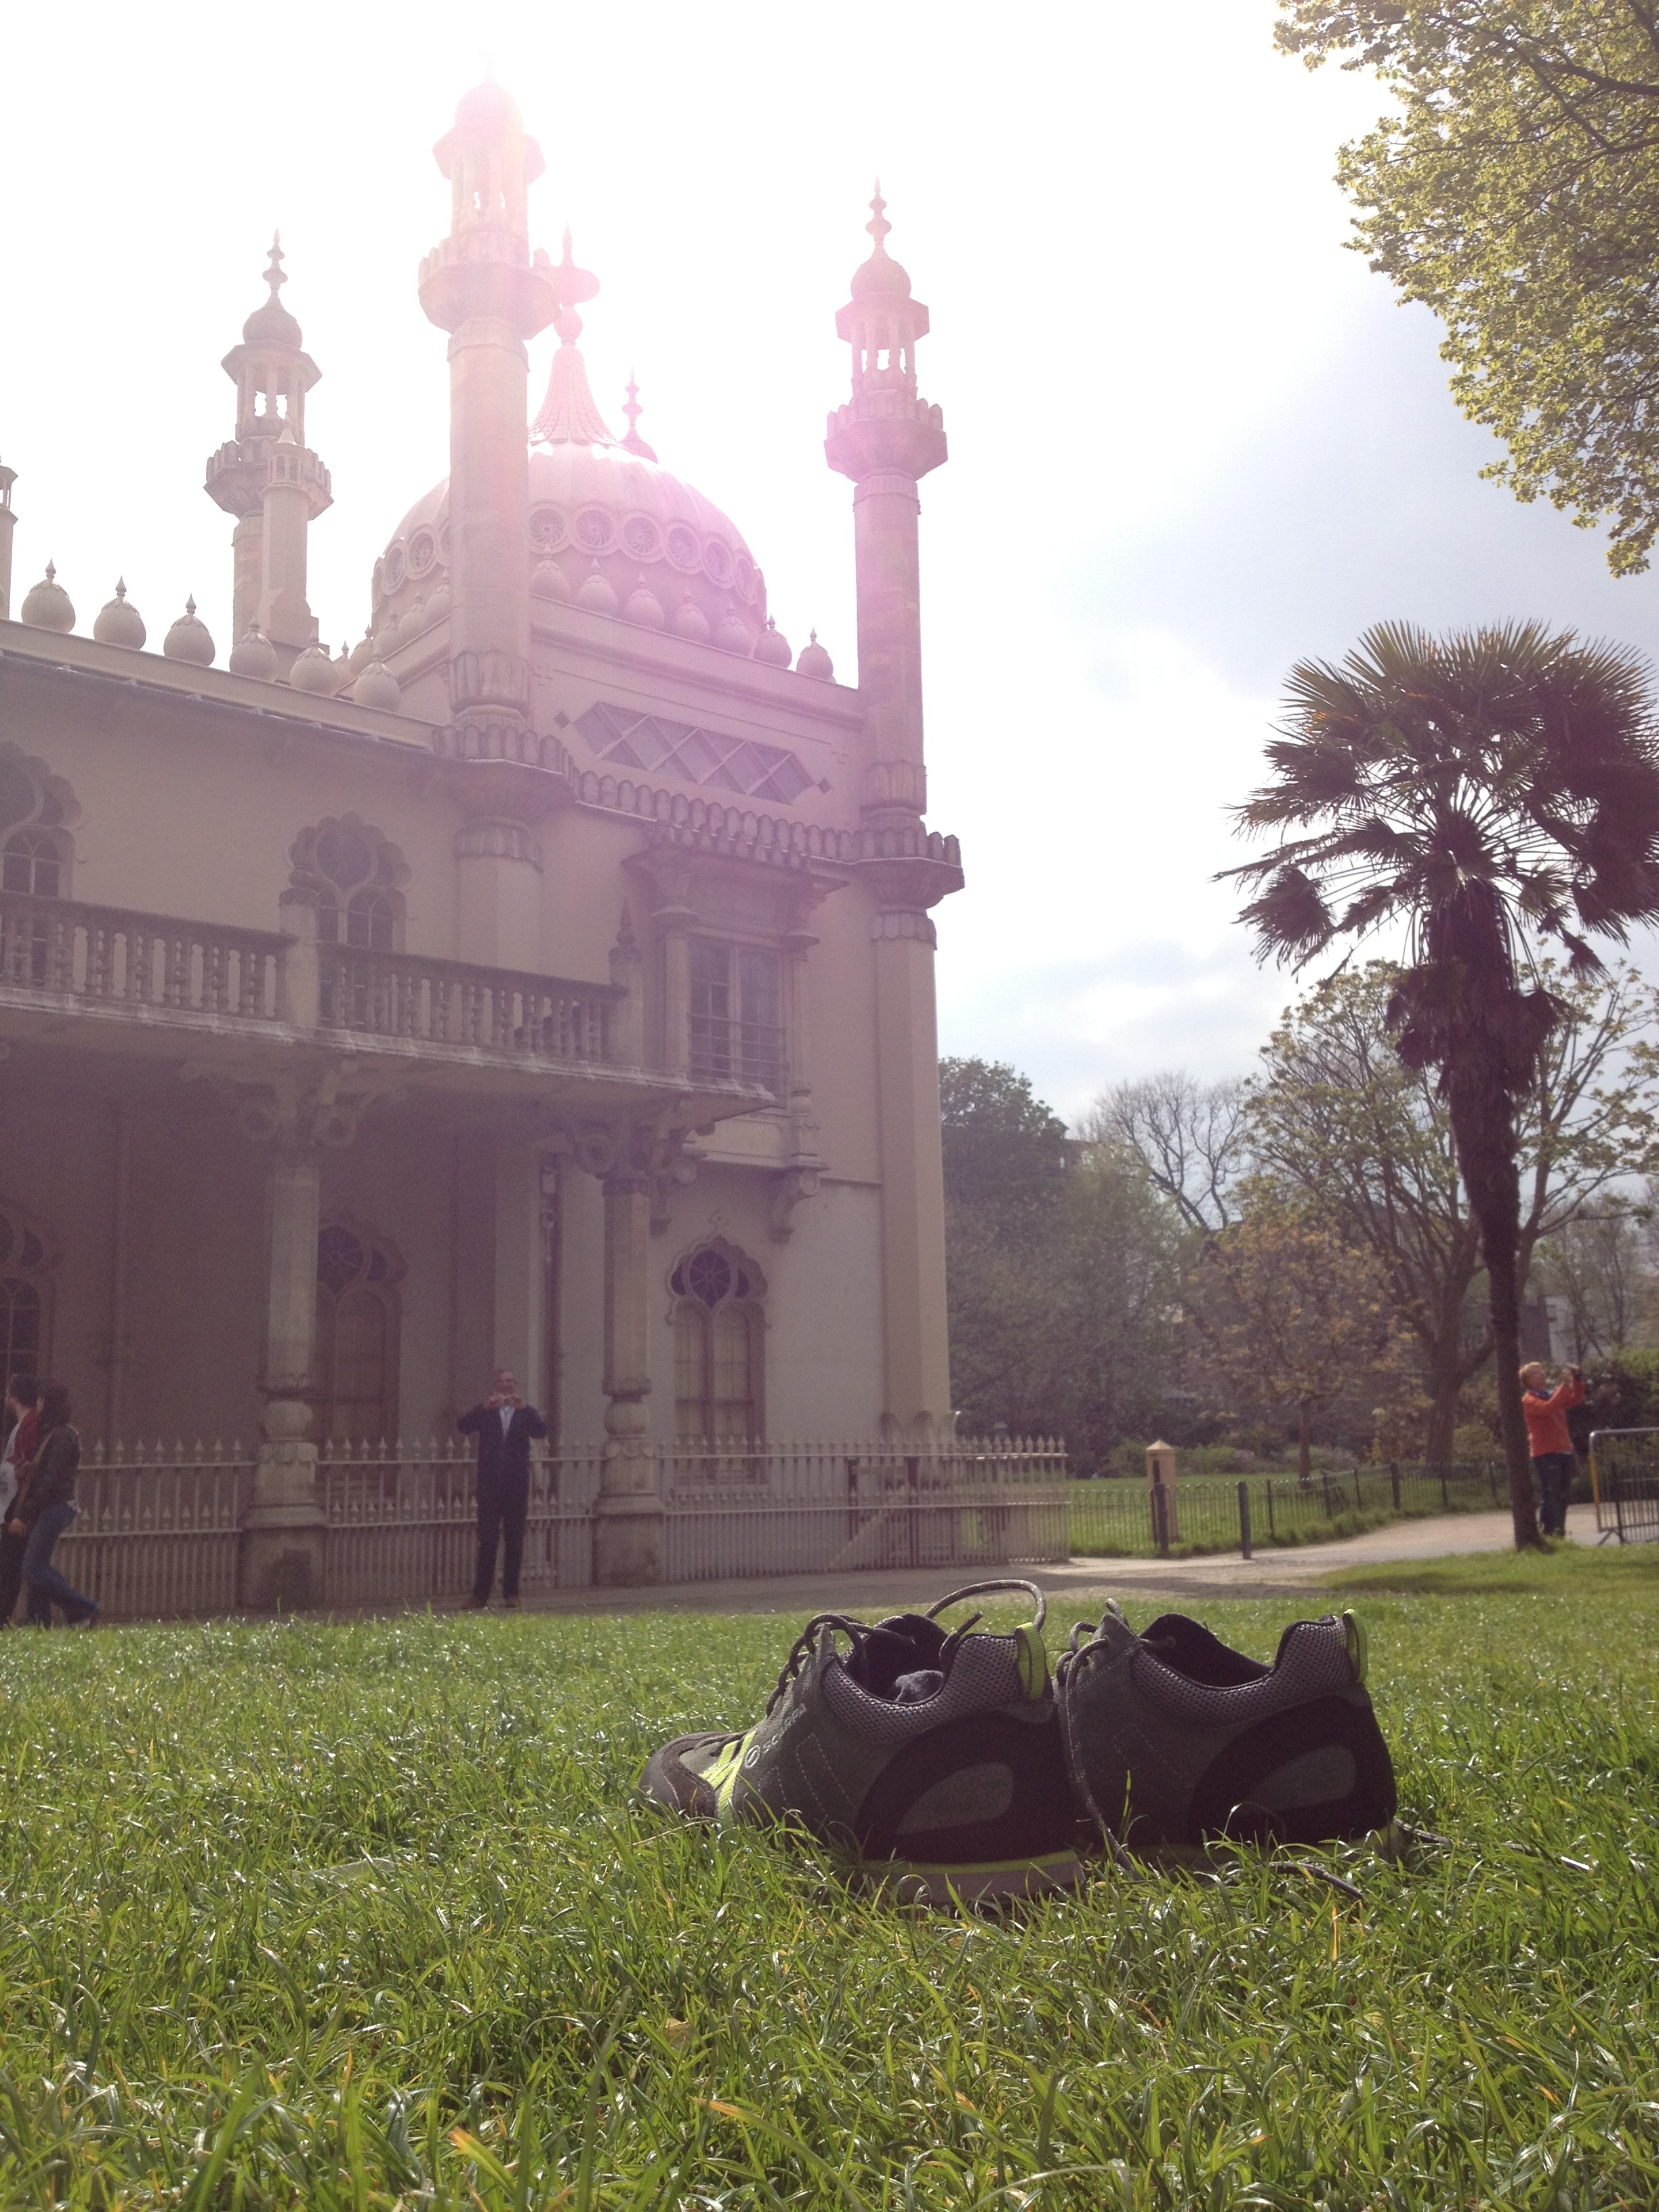 The Writing Man's shoes in front of Brighton Pavilion